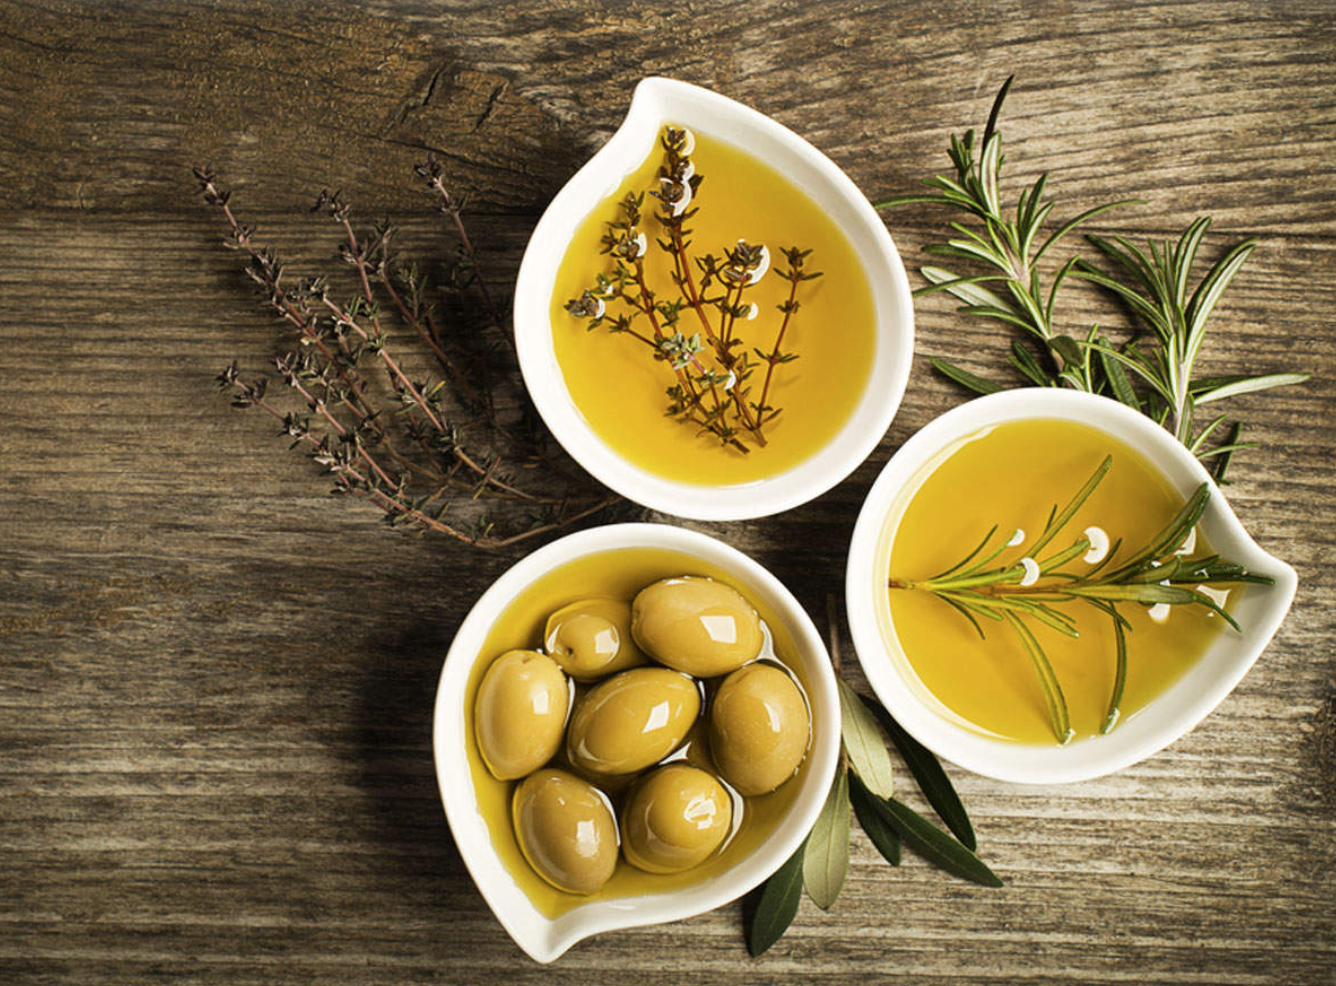 olive-oil-poured-in-containers-photo.png